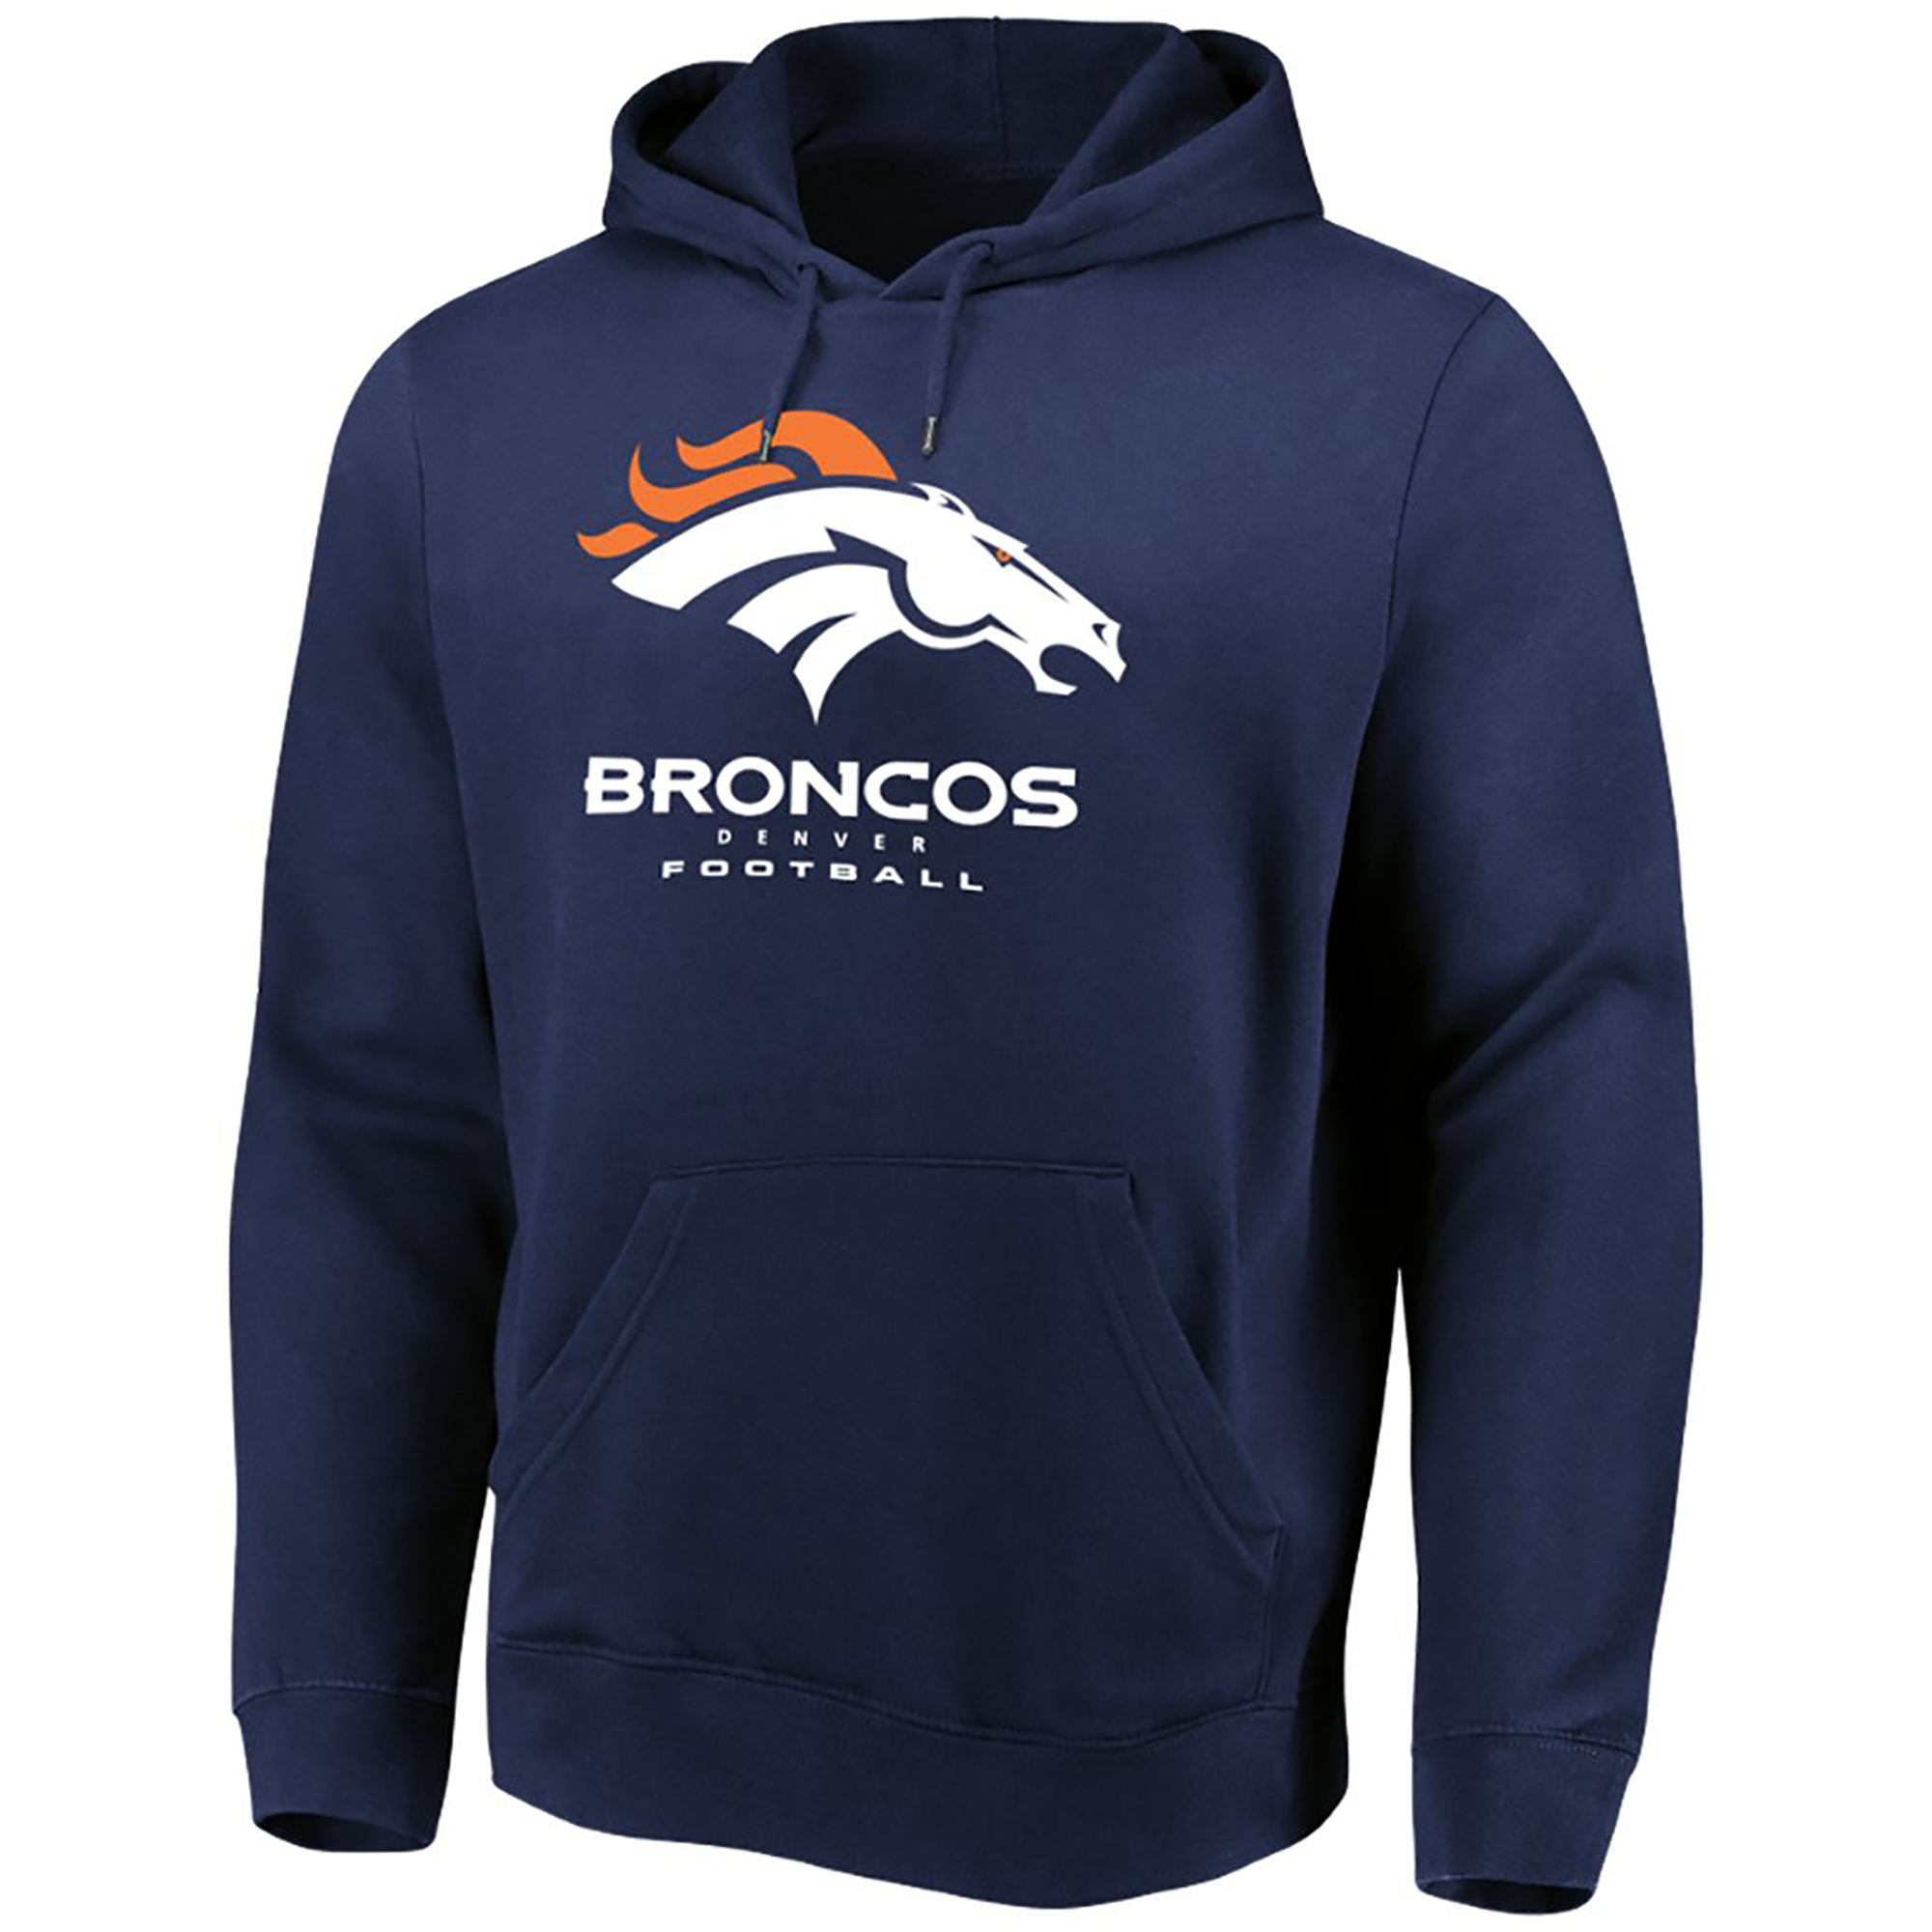 Men's Majestic Navy Denver Broncos Our Team Pullover Hoodie